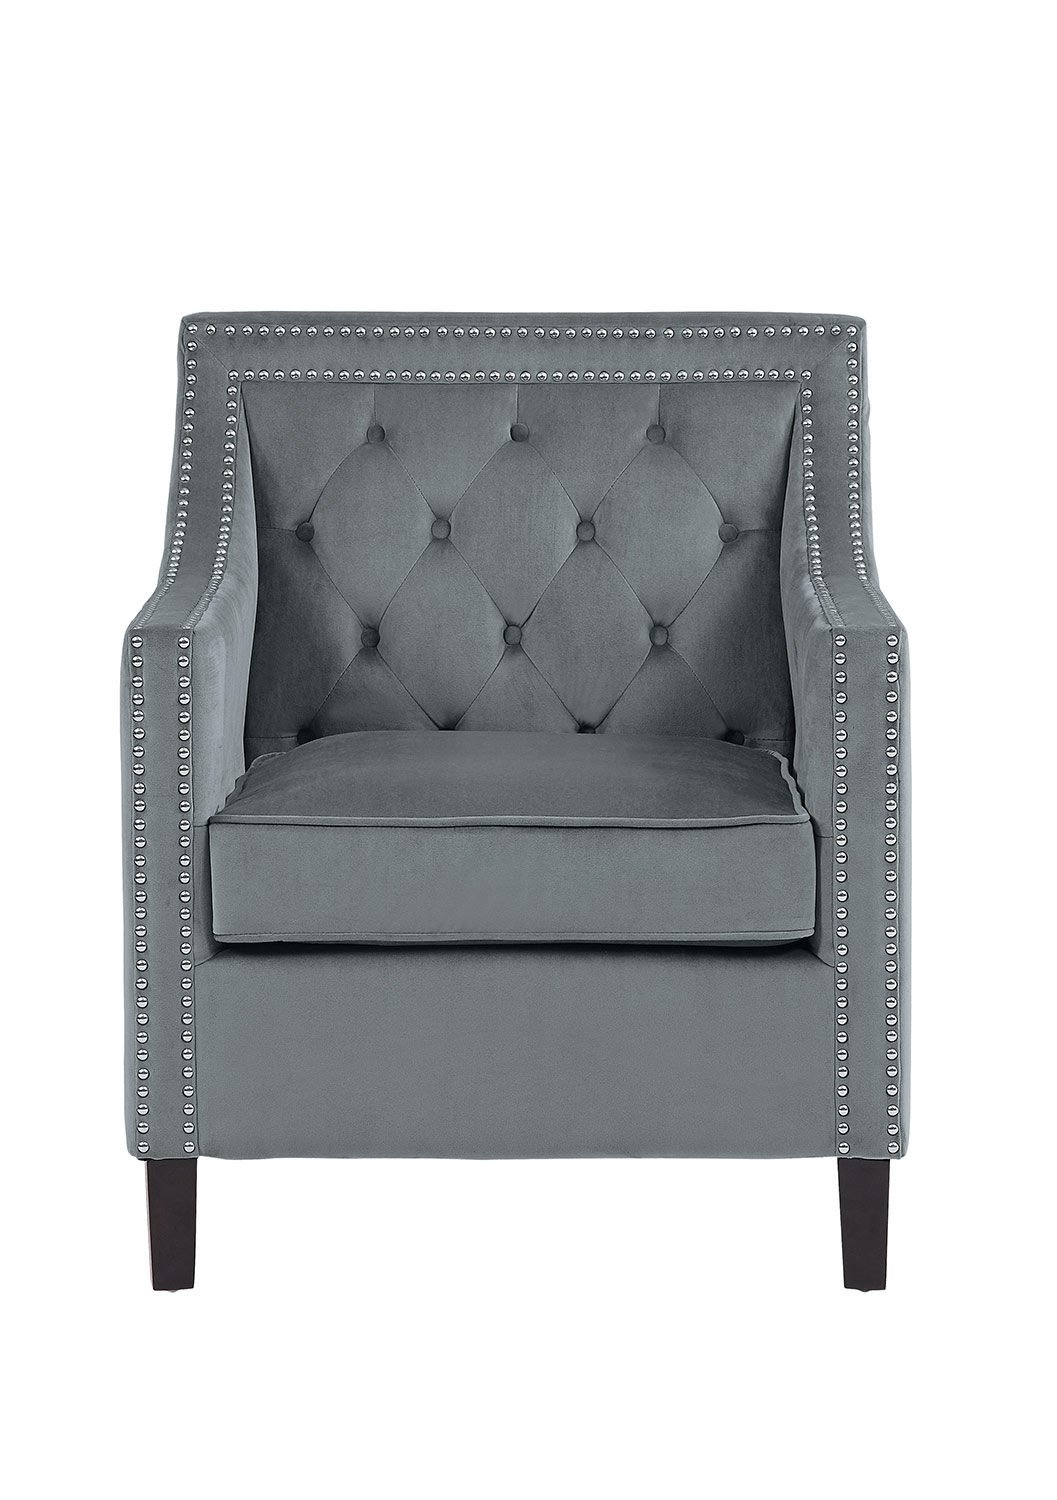 Homelegance Grazioso Accent Chair - Gray